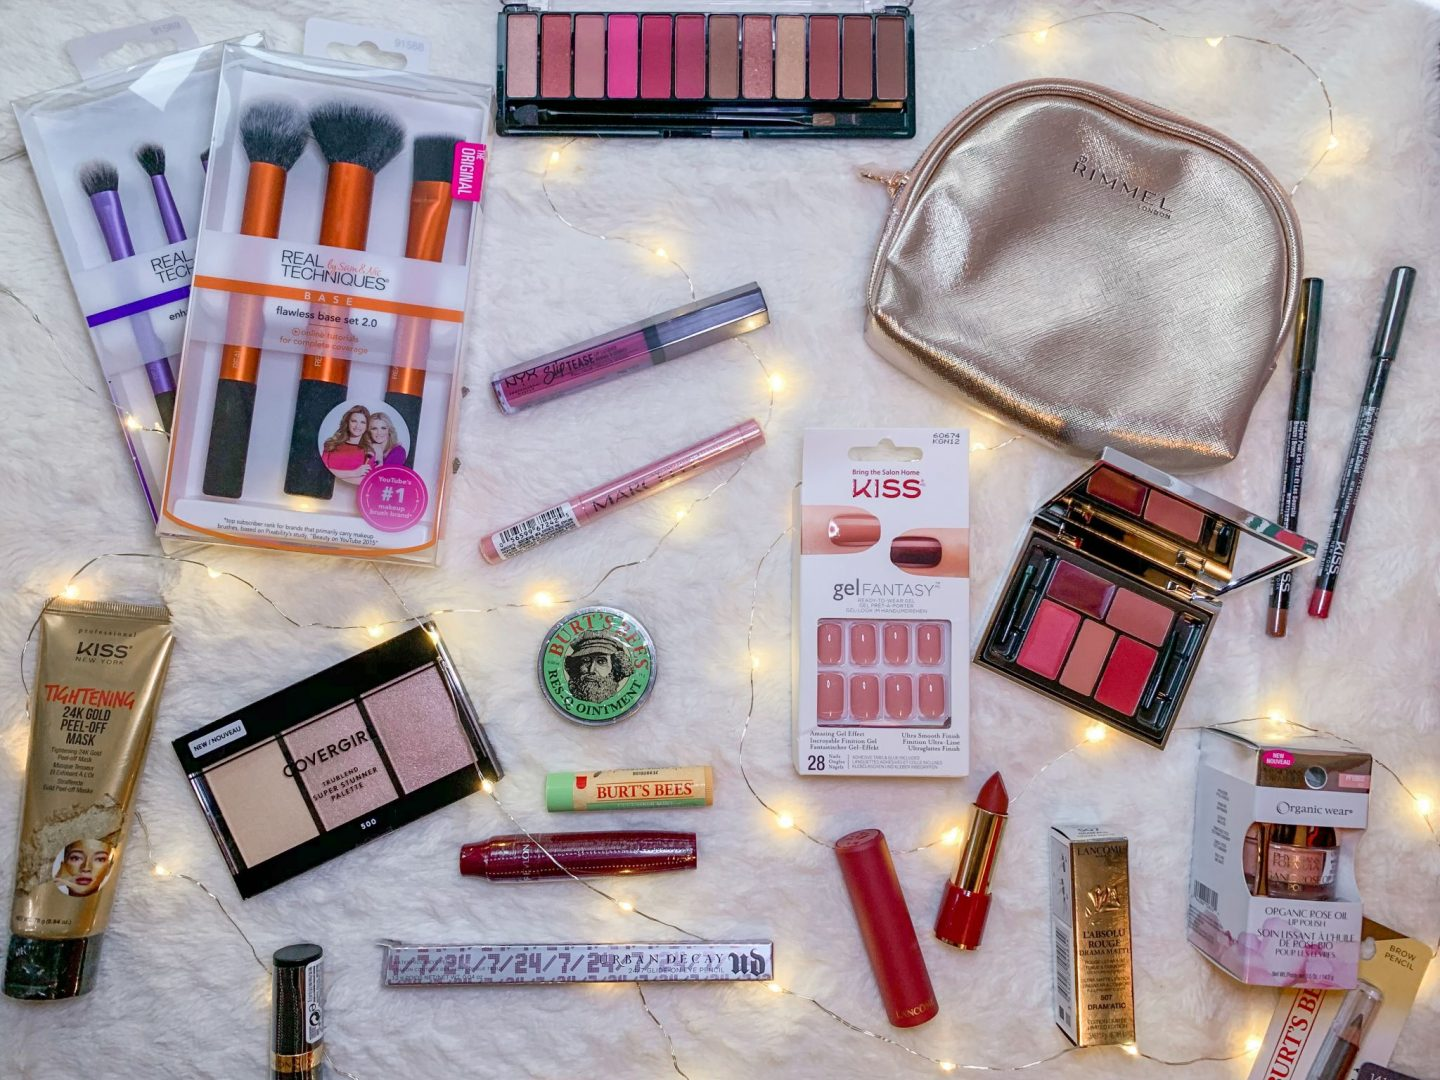 makeup and beauty products from KISS, cover girl, Burt's Bees and more